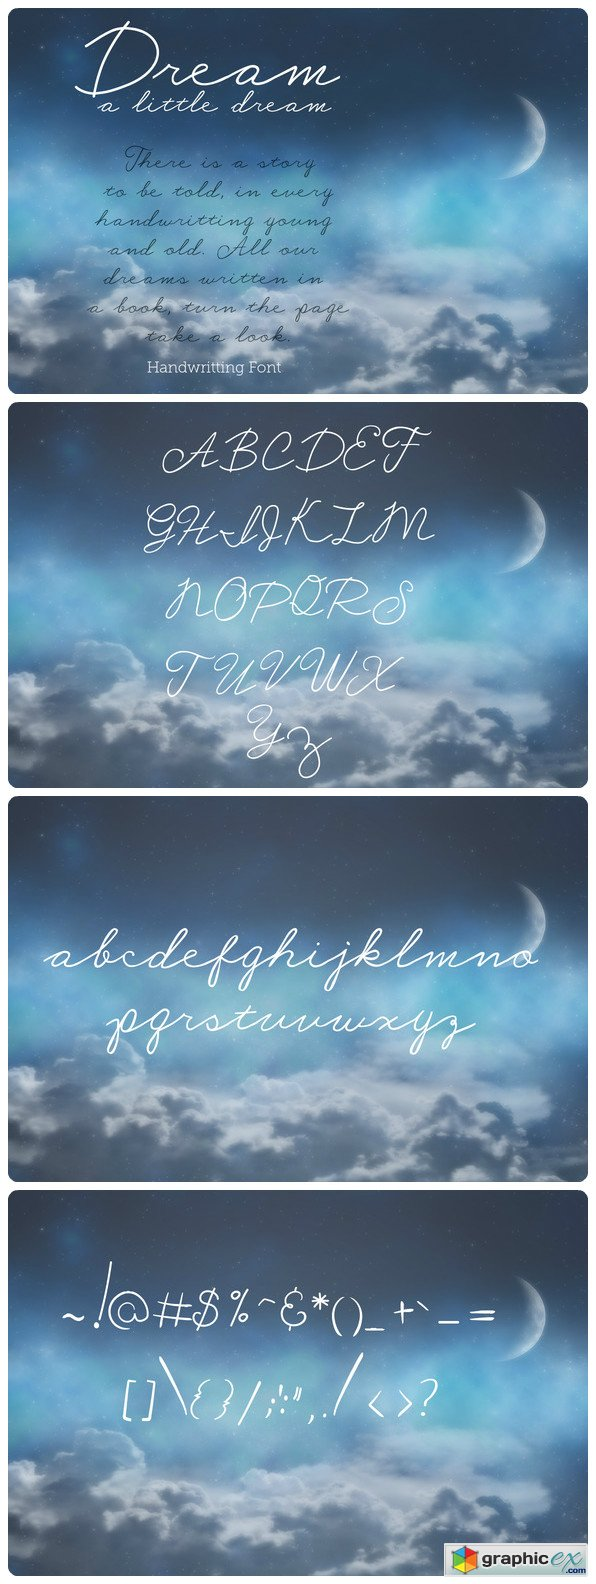 Dream A Little Dream - Font